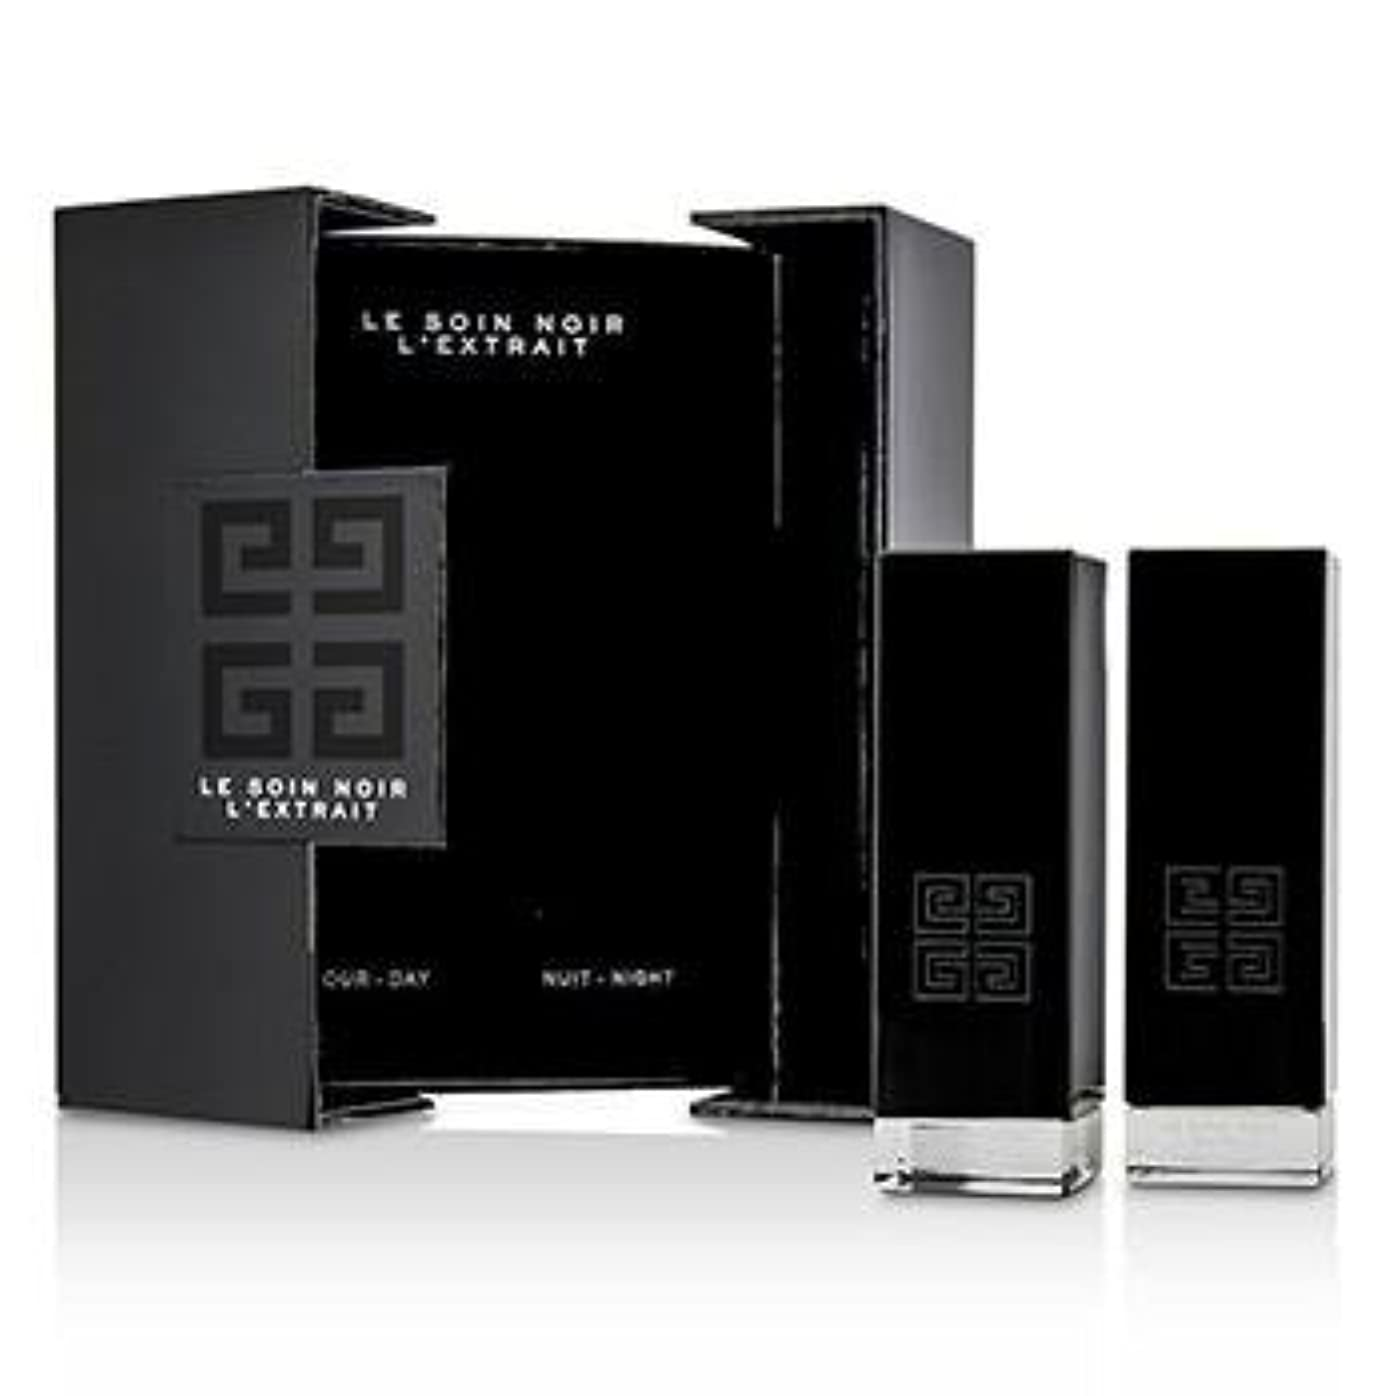 多用途発行するシードジバンシィ Le Soin Noir L'Extrait: L'Extrait Day Serum 15ml/0.5oz + L'Extrait Night Serum 15ml/0.5oz 2pcs並行輸入品